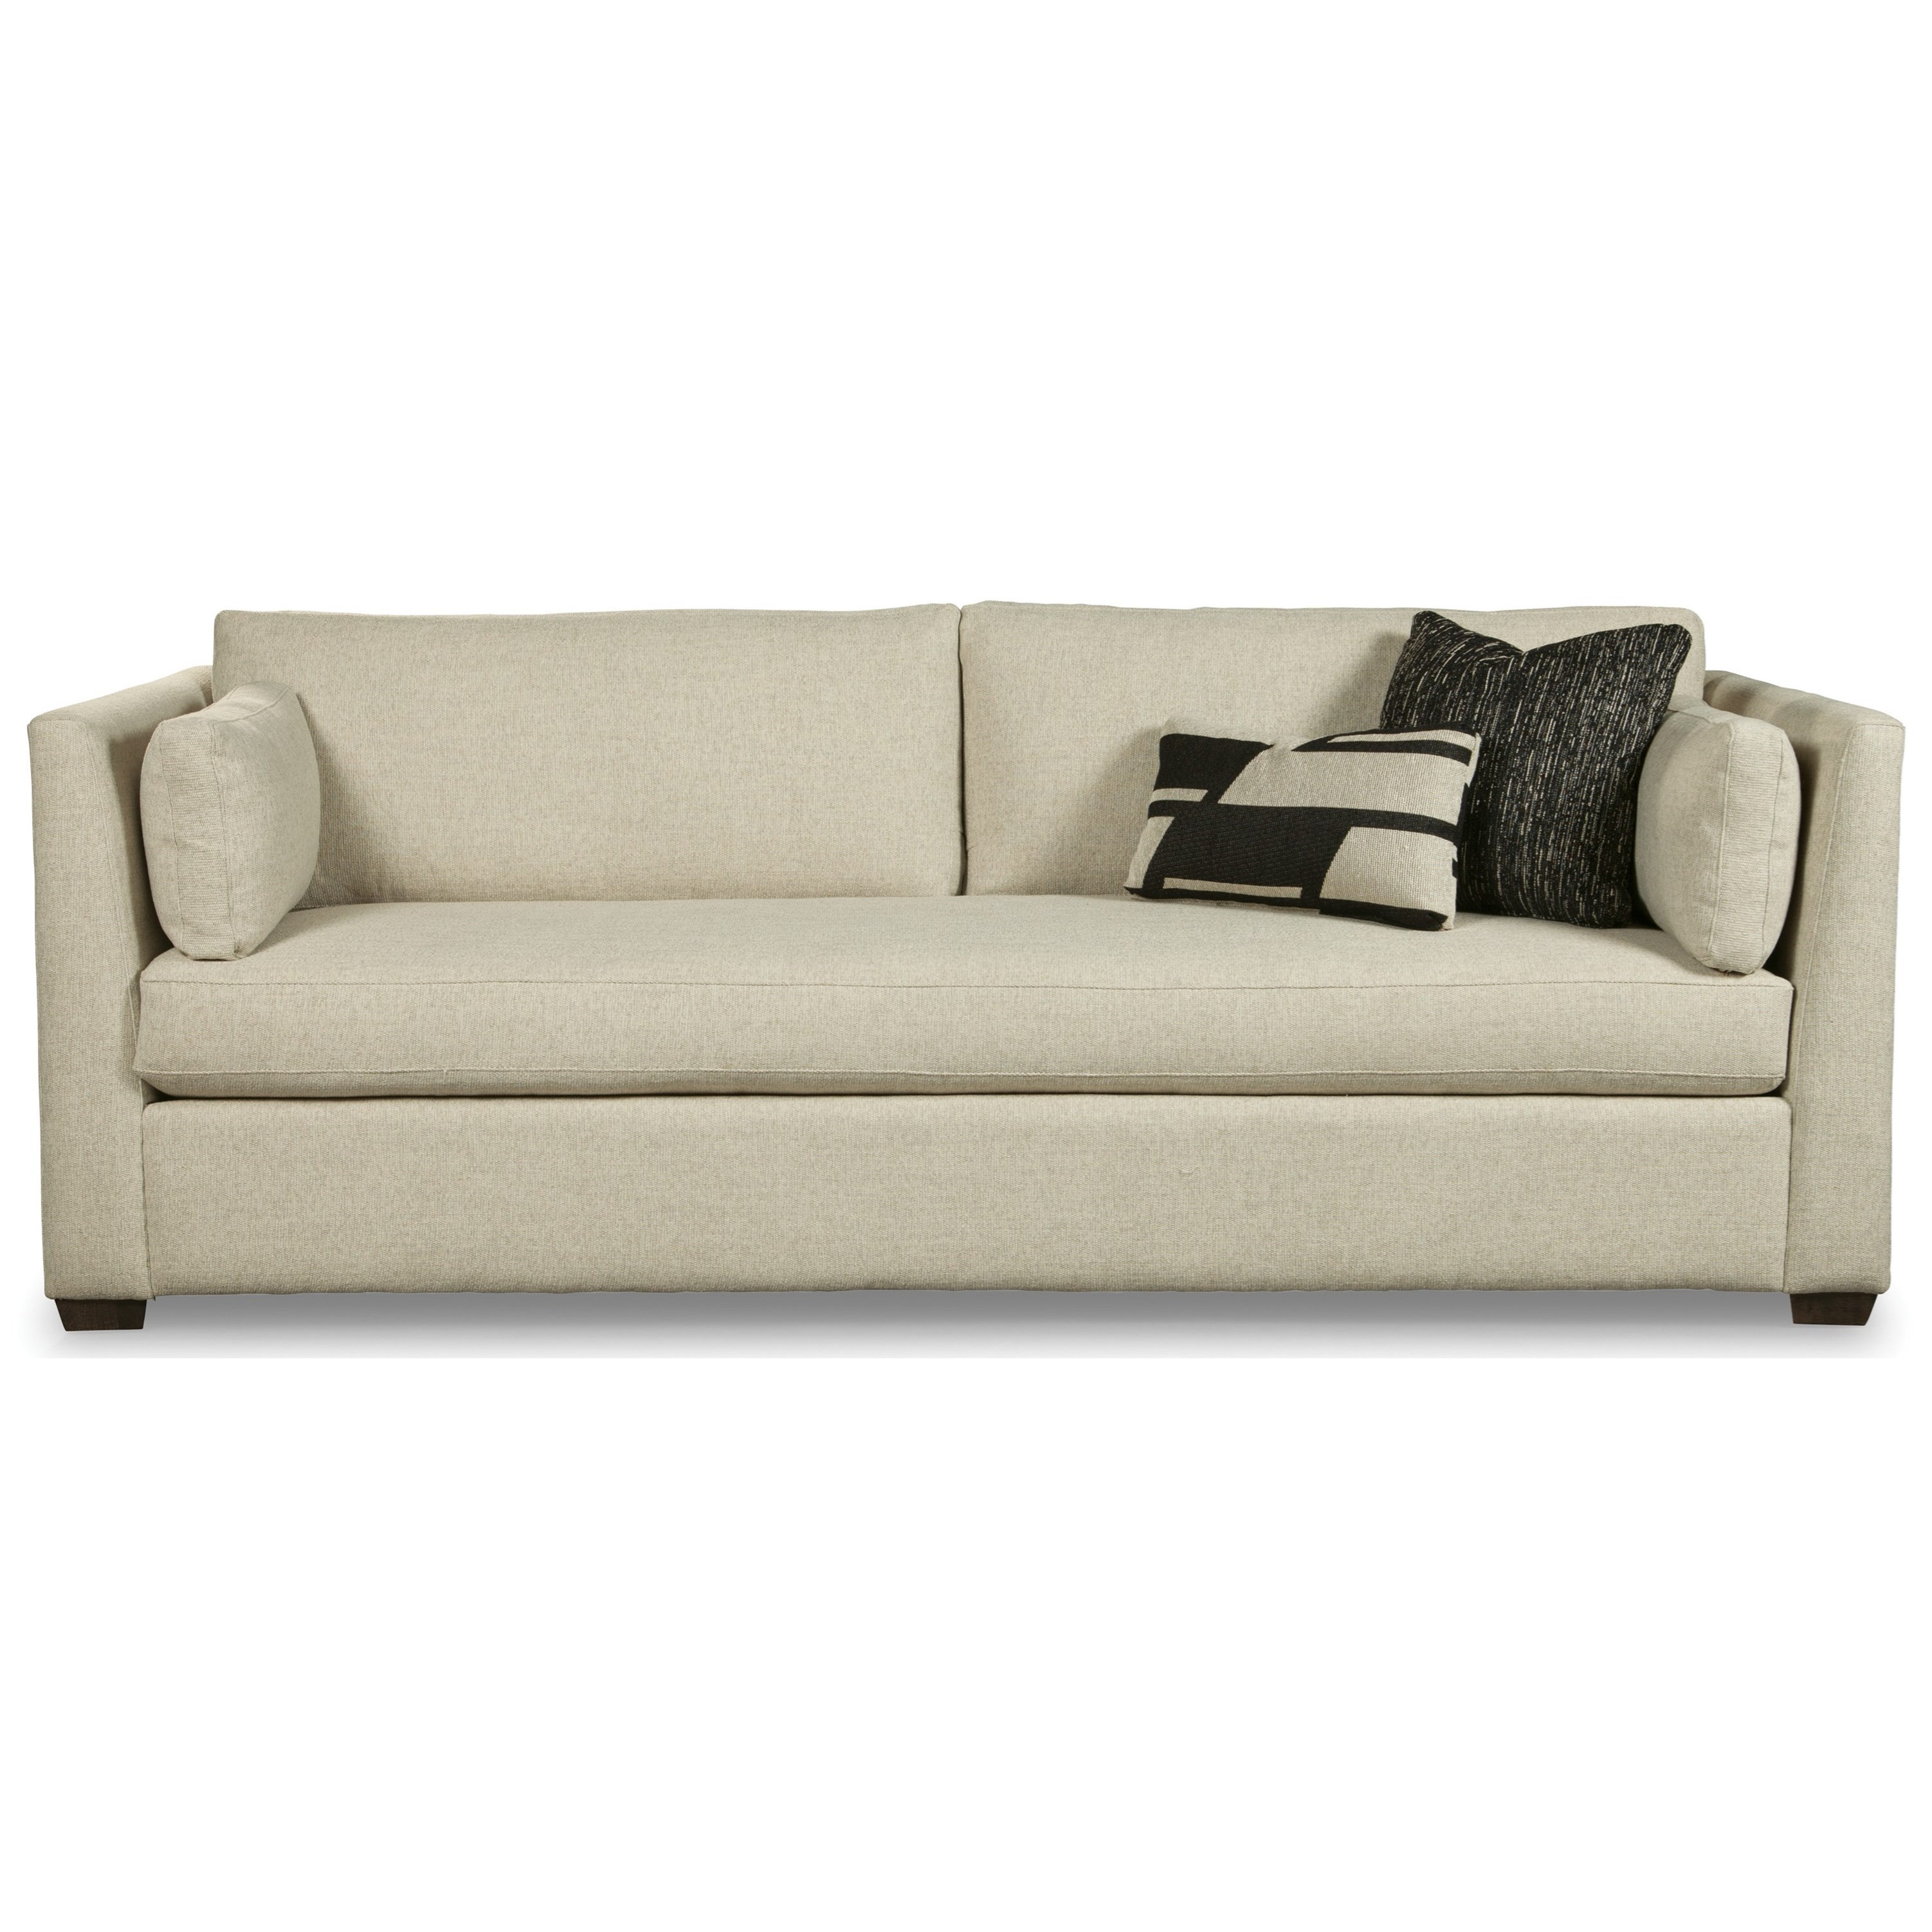 Awesome ... Bench Seat Sofa. Rachael Ray Home By Craftmaster RR76010097 ...